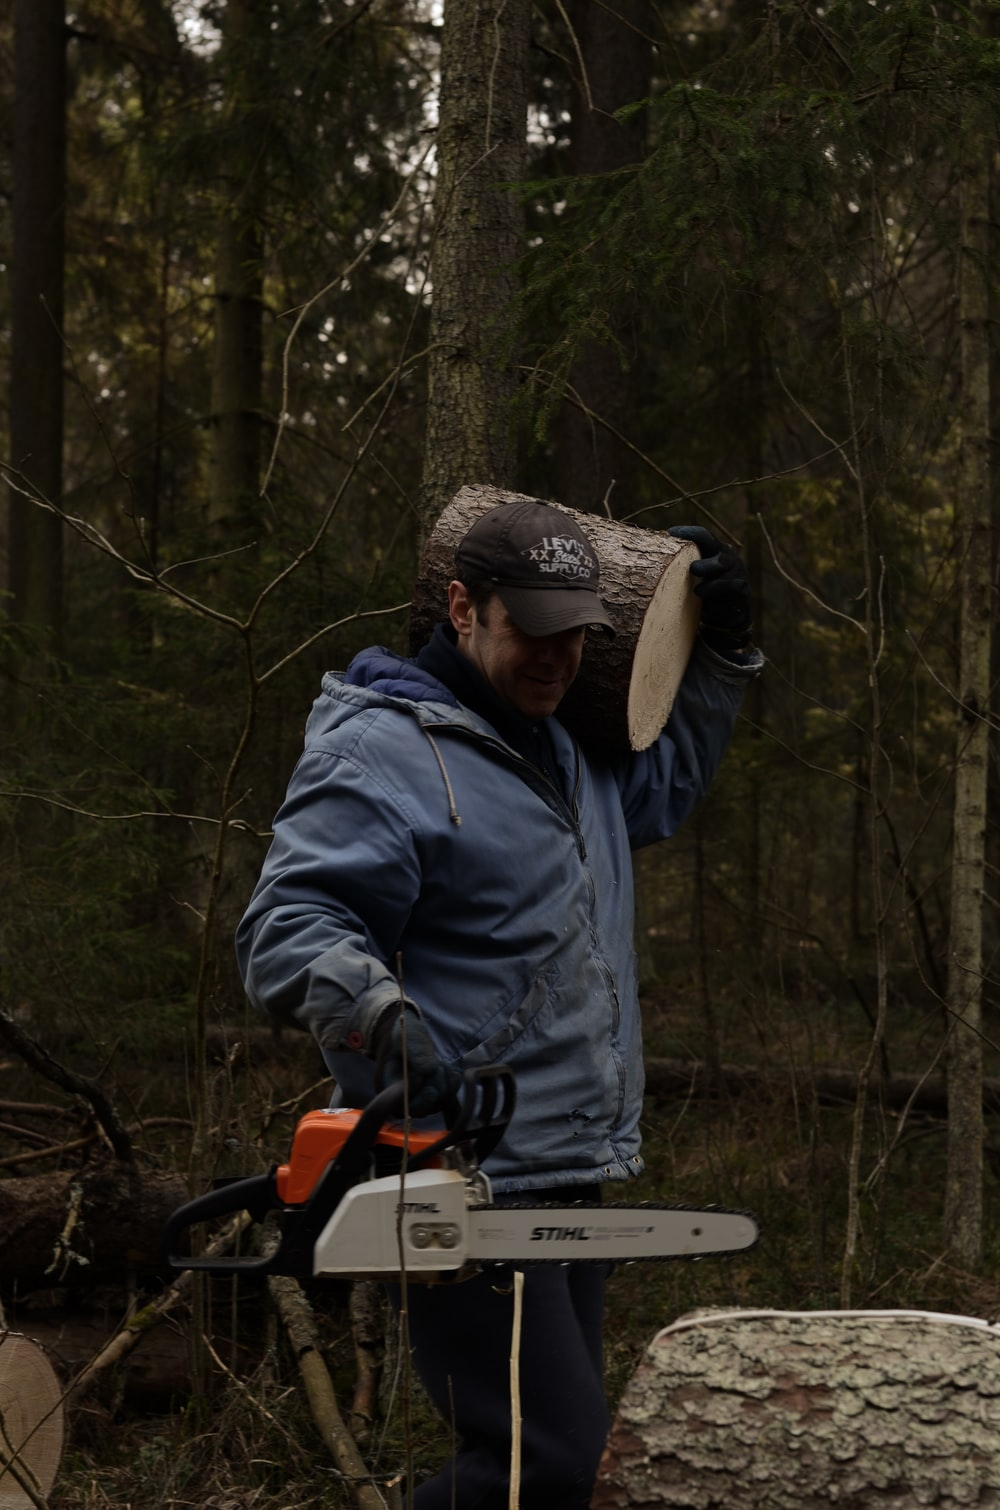 man in blue jacket and brown knit cap holding orange and black power tool